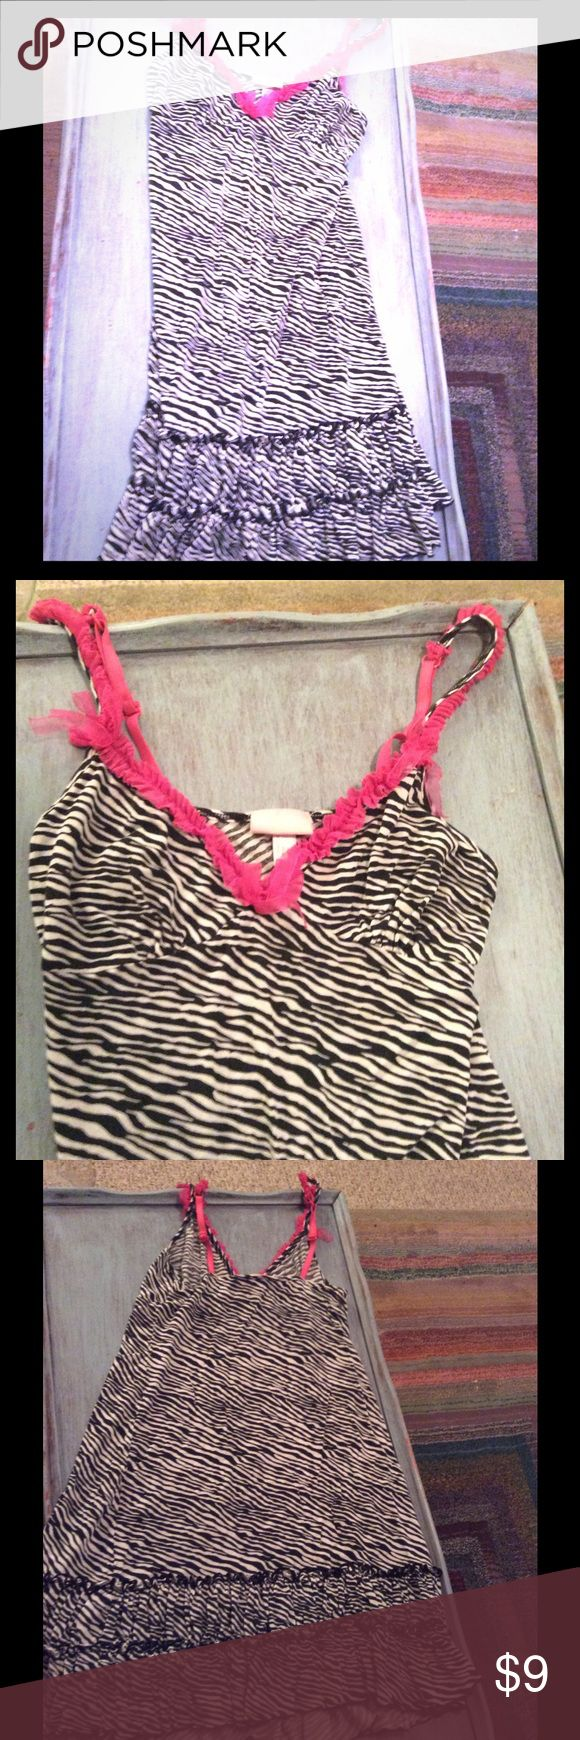 ✅✅2 for $11.00 Gently used condition with lots of wear left in them.  ST Eve size small St eve Intimates & Sleepwear Pajamas